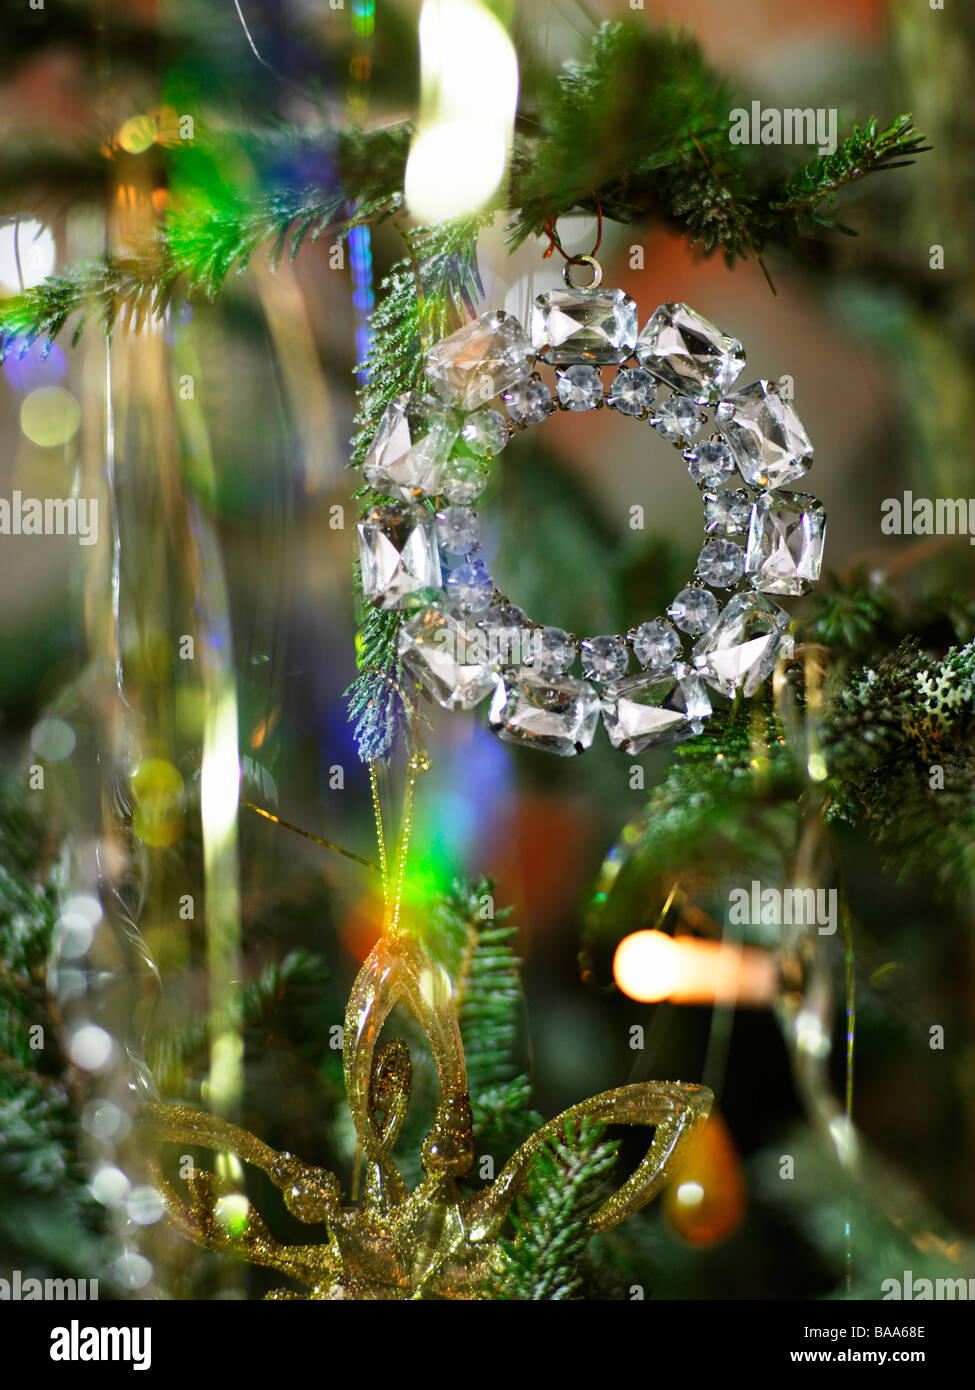 A decorated christmas tree, close-up. - Stock Image